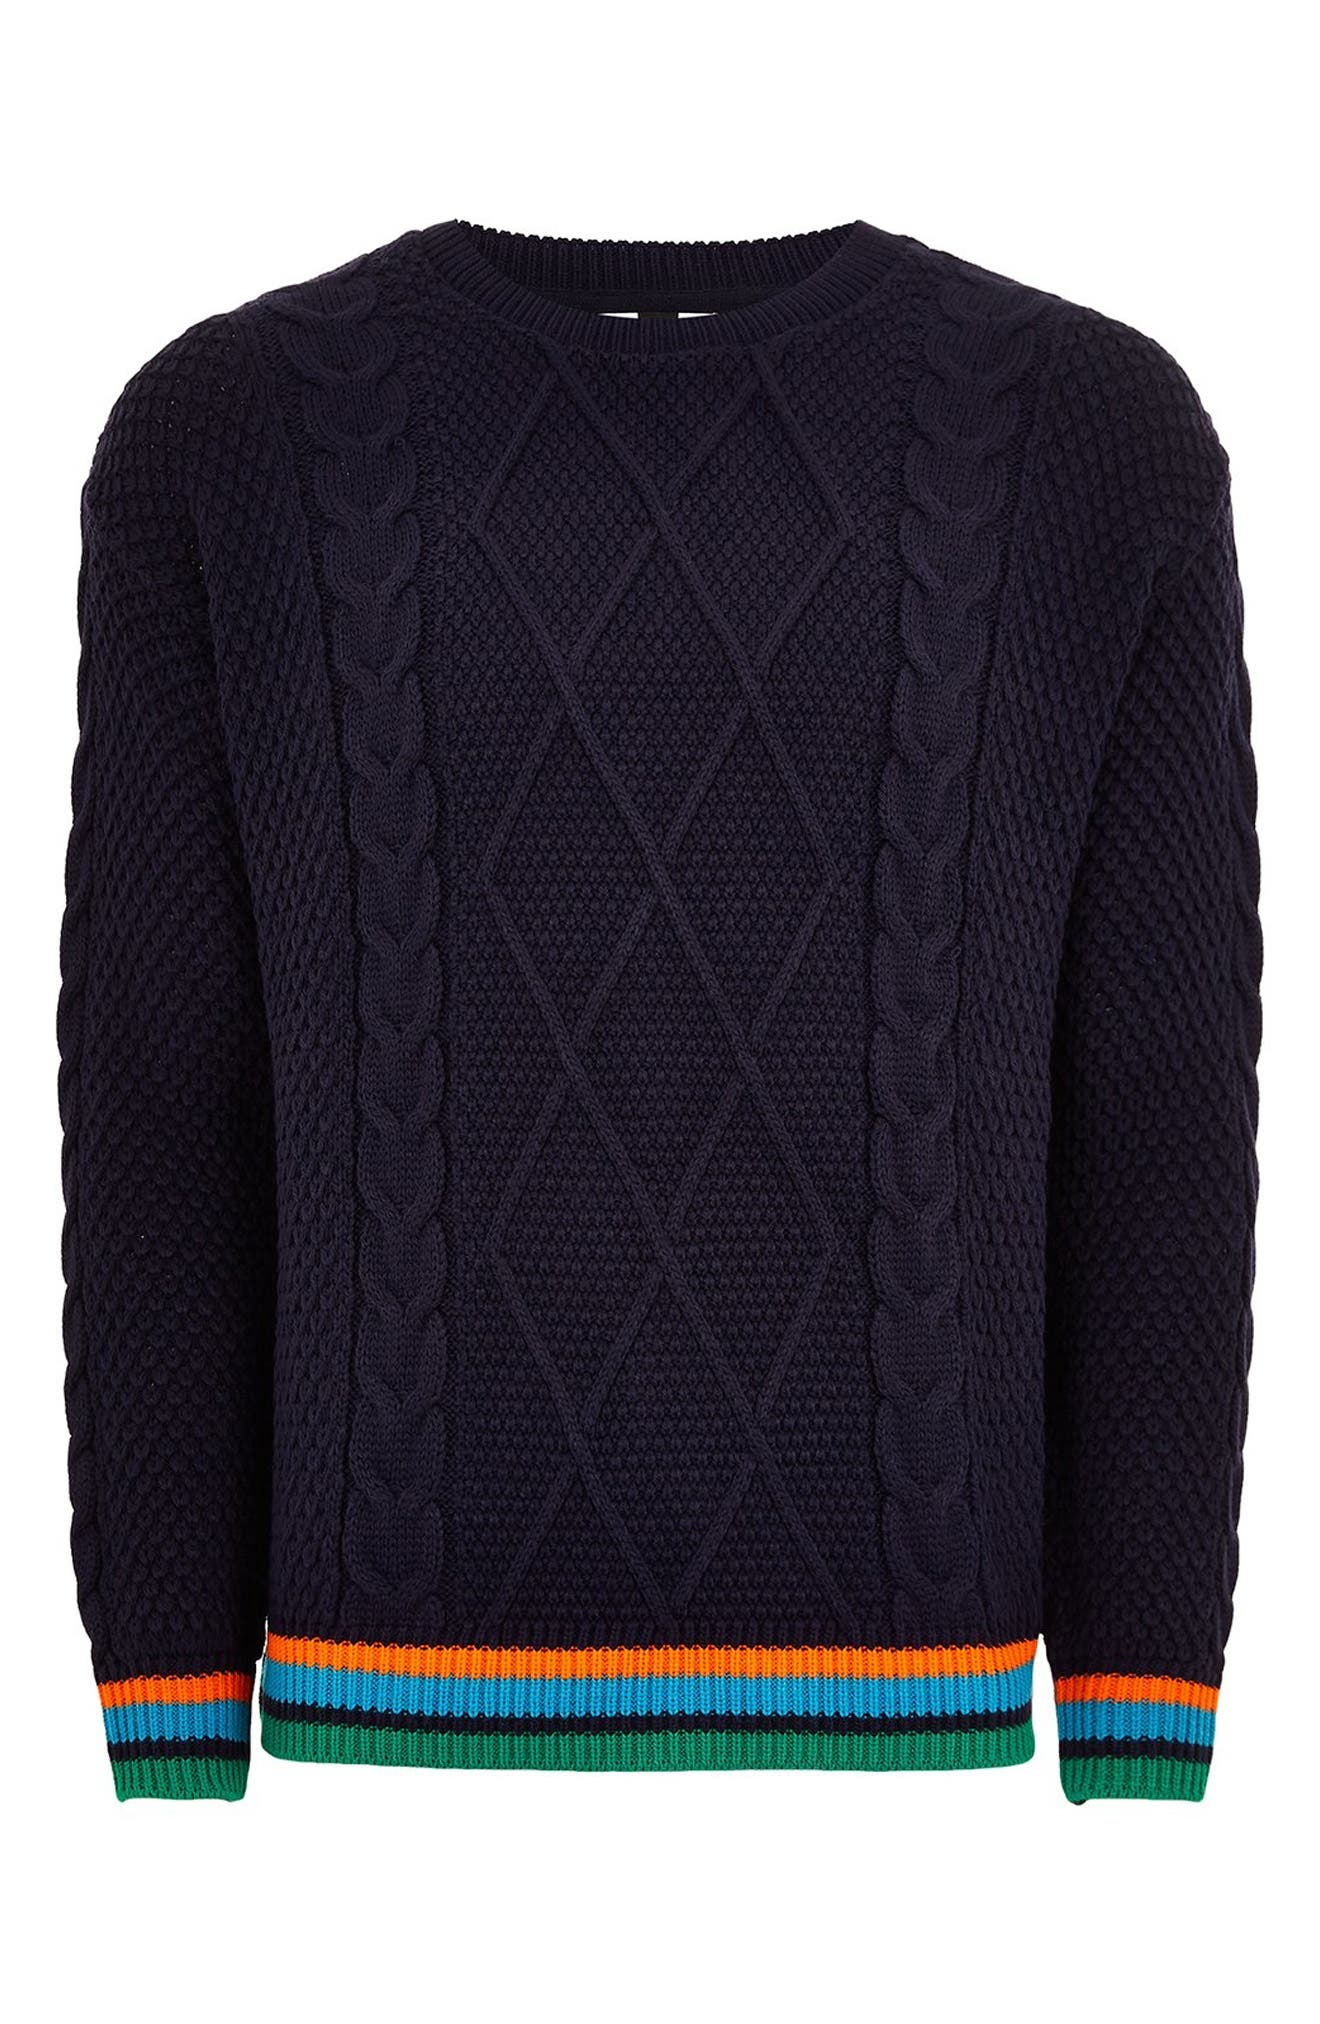 Classic Fit Cable Knit Sweater,                             Alternate thumbnail 4, color,                             411